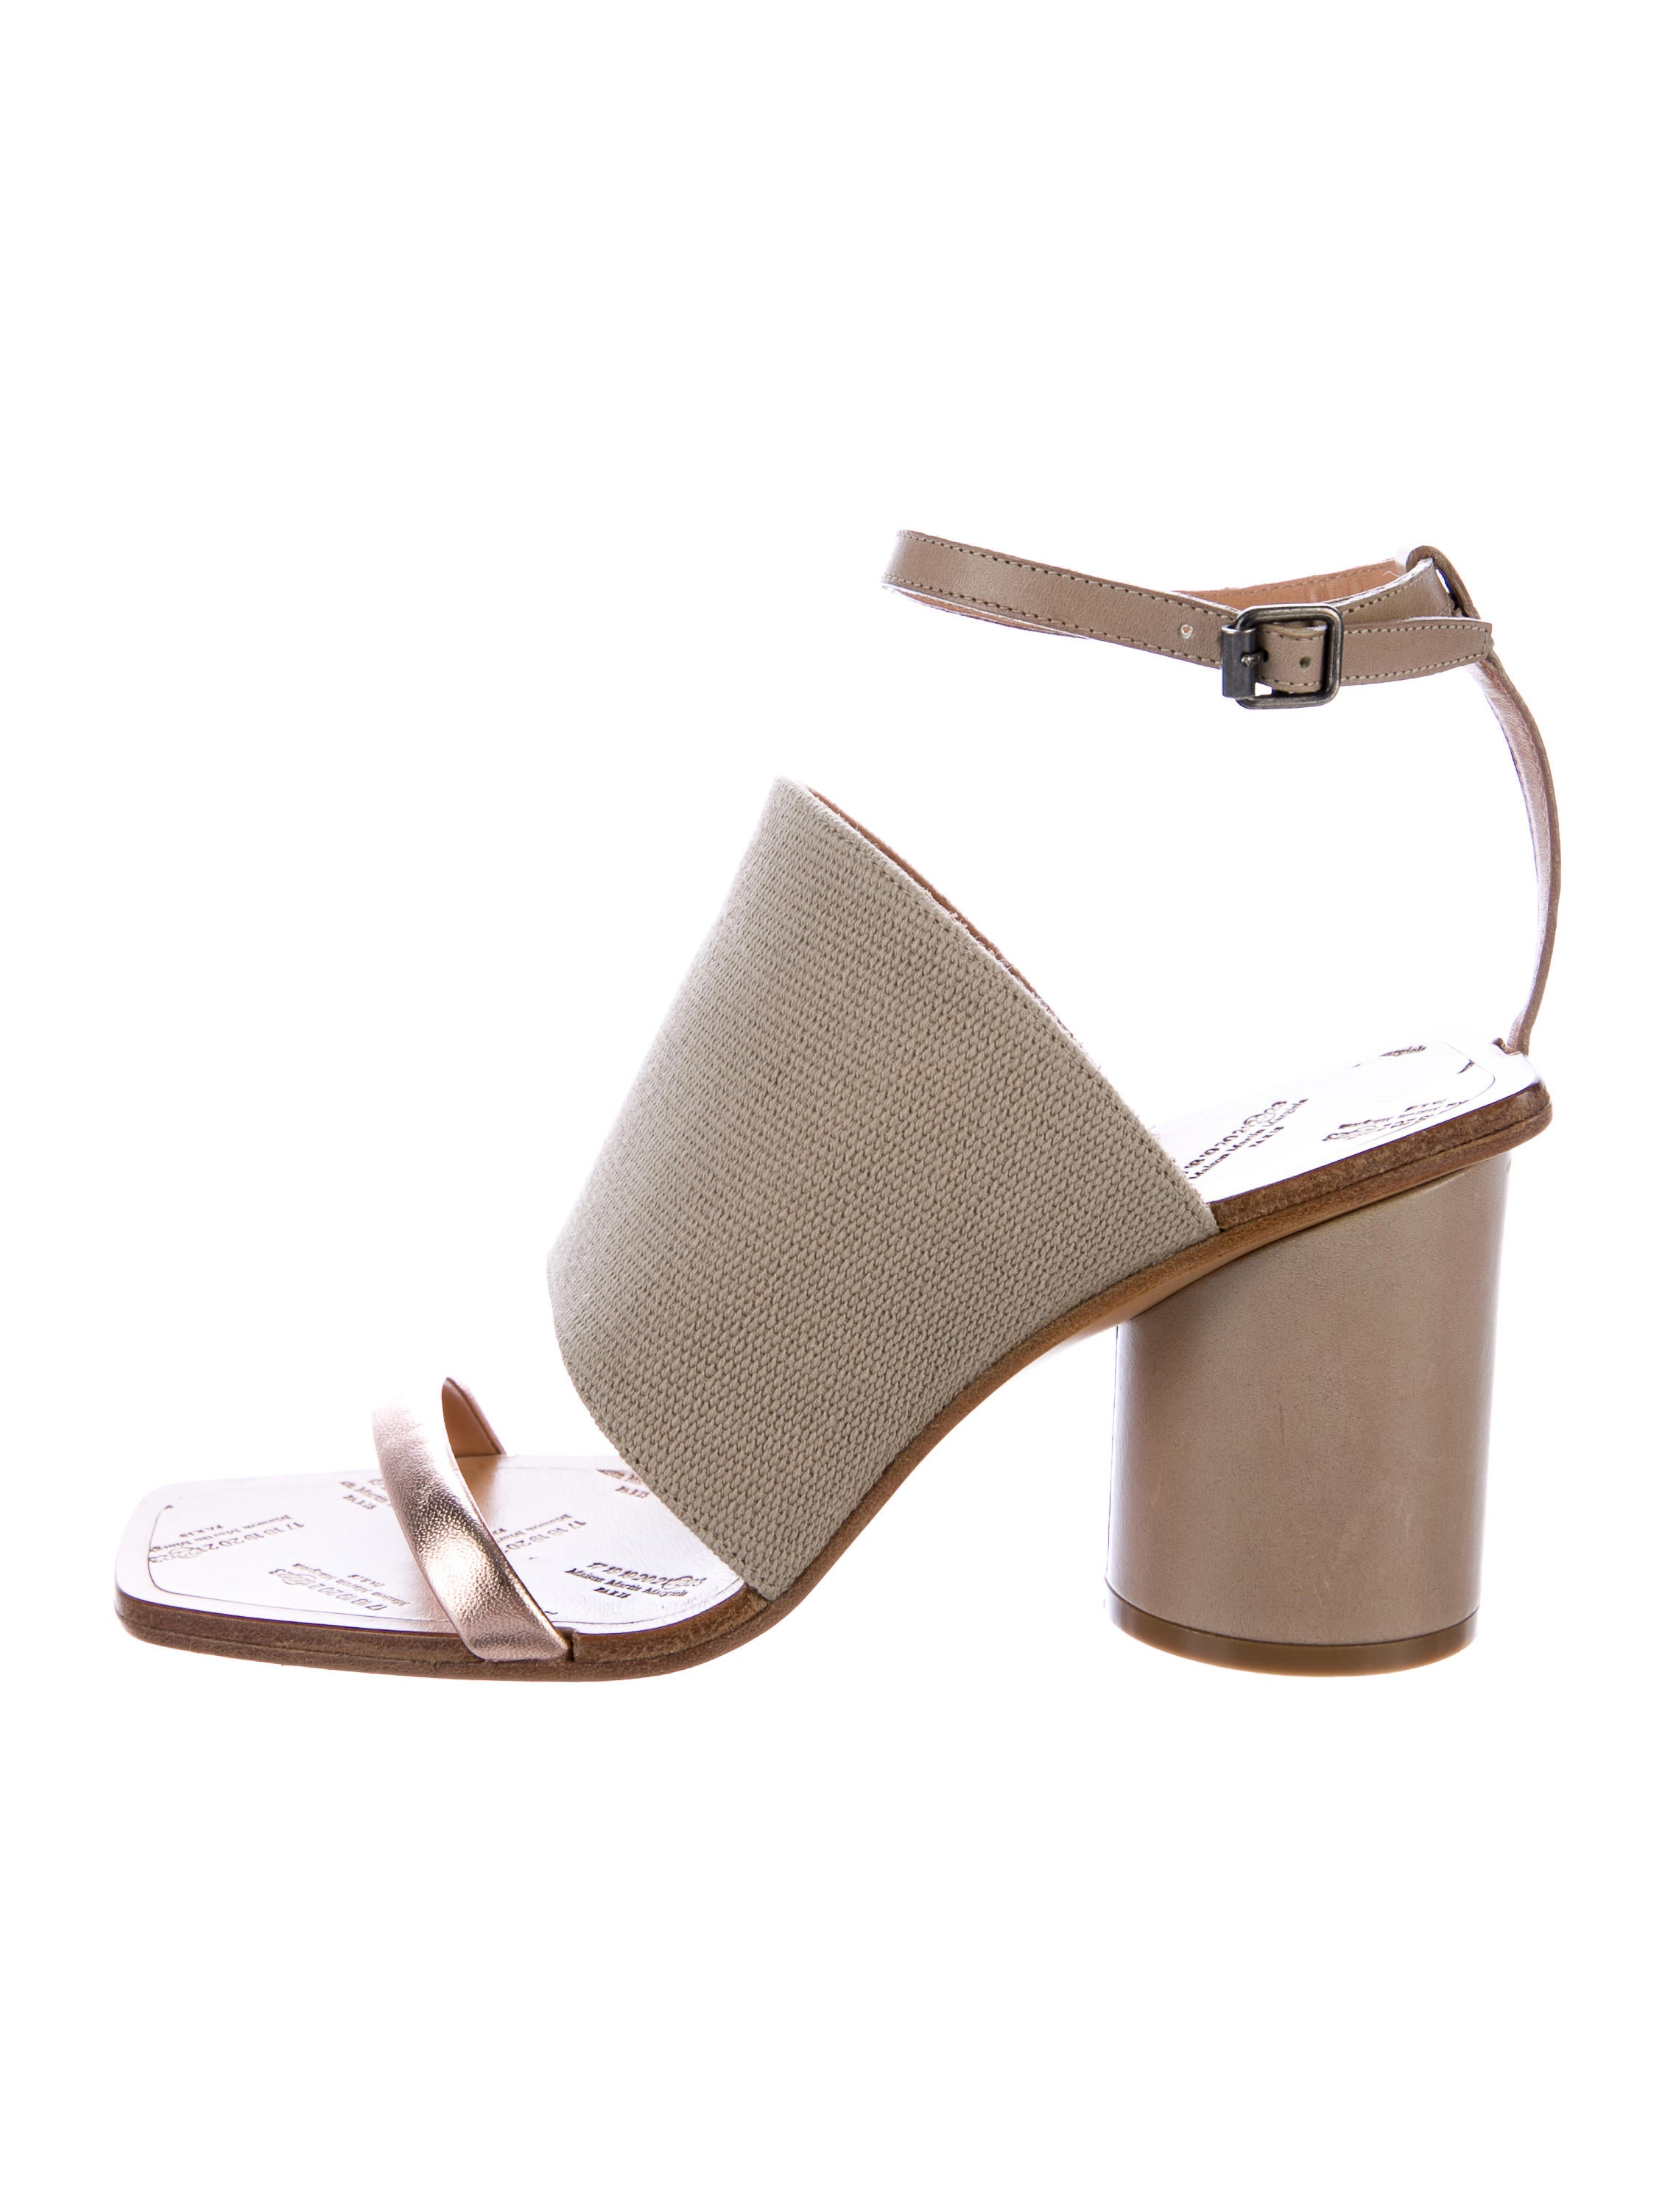 discount best store to get eastbay cheap price Maison Margiela Canvas Ankle Strap Sandals shop sale online discount in China Yh4k0DHg0